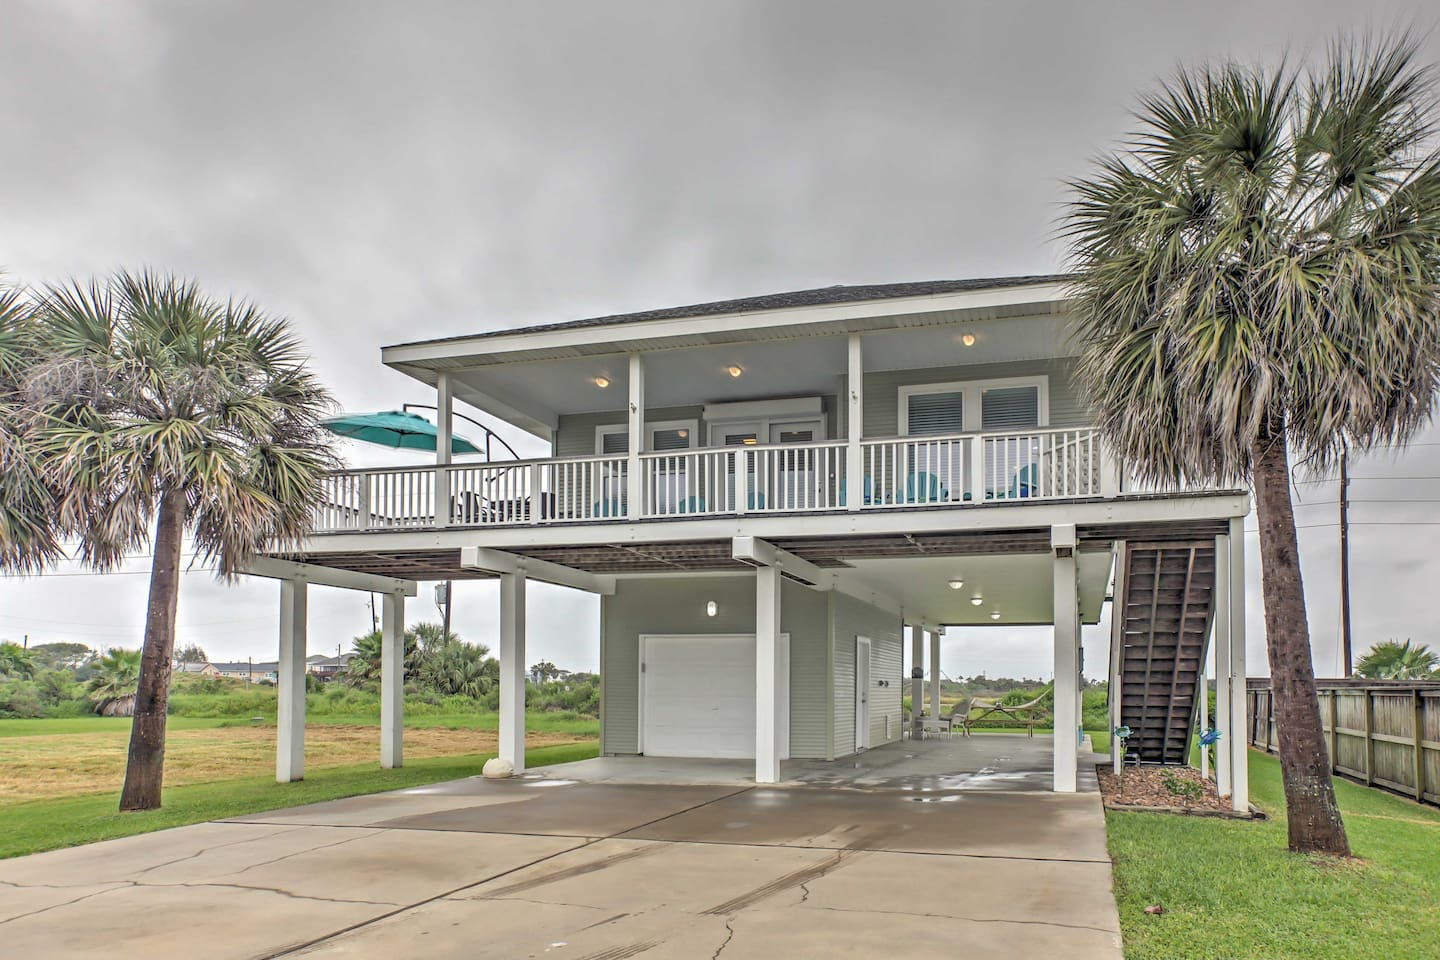 Elevate your next Galveston getaway with this 3-bedroom, 2-bath vacation rental.